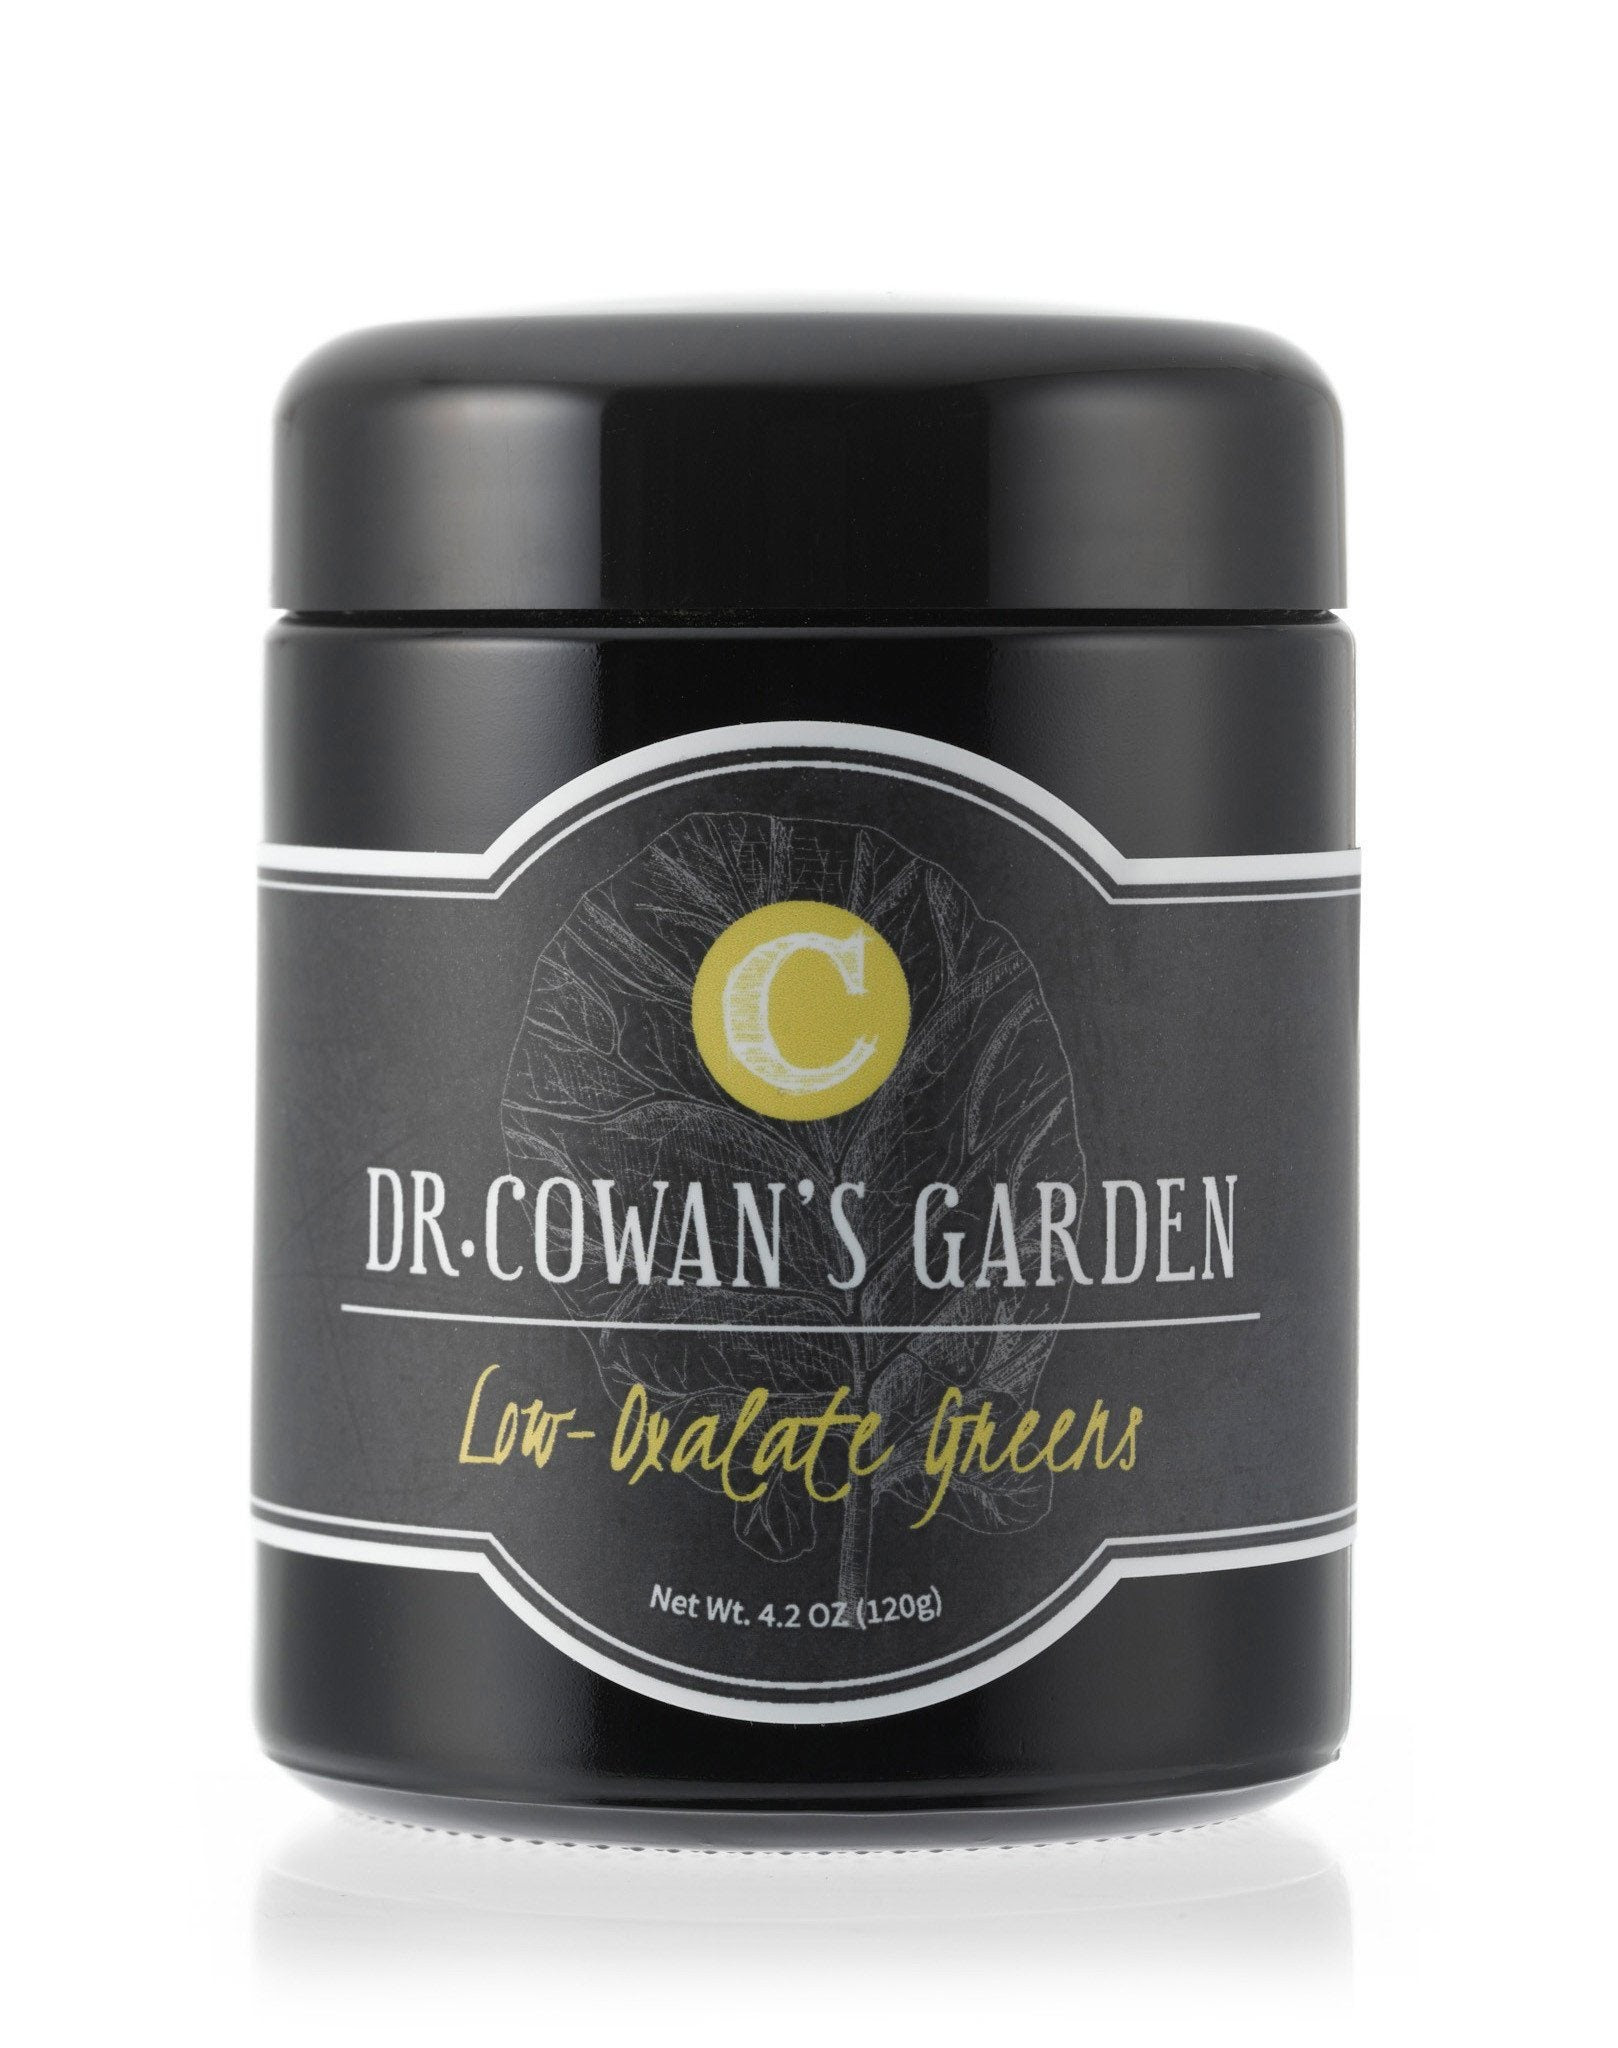 Image of Dr. Cowan's Garden Low-Oxalate Greens Powder